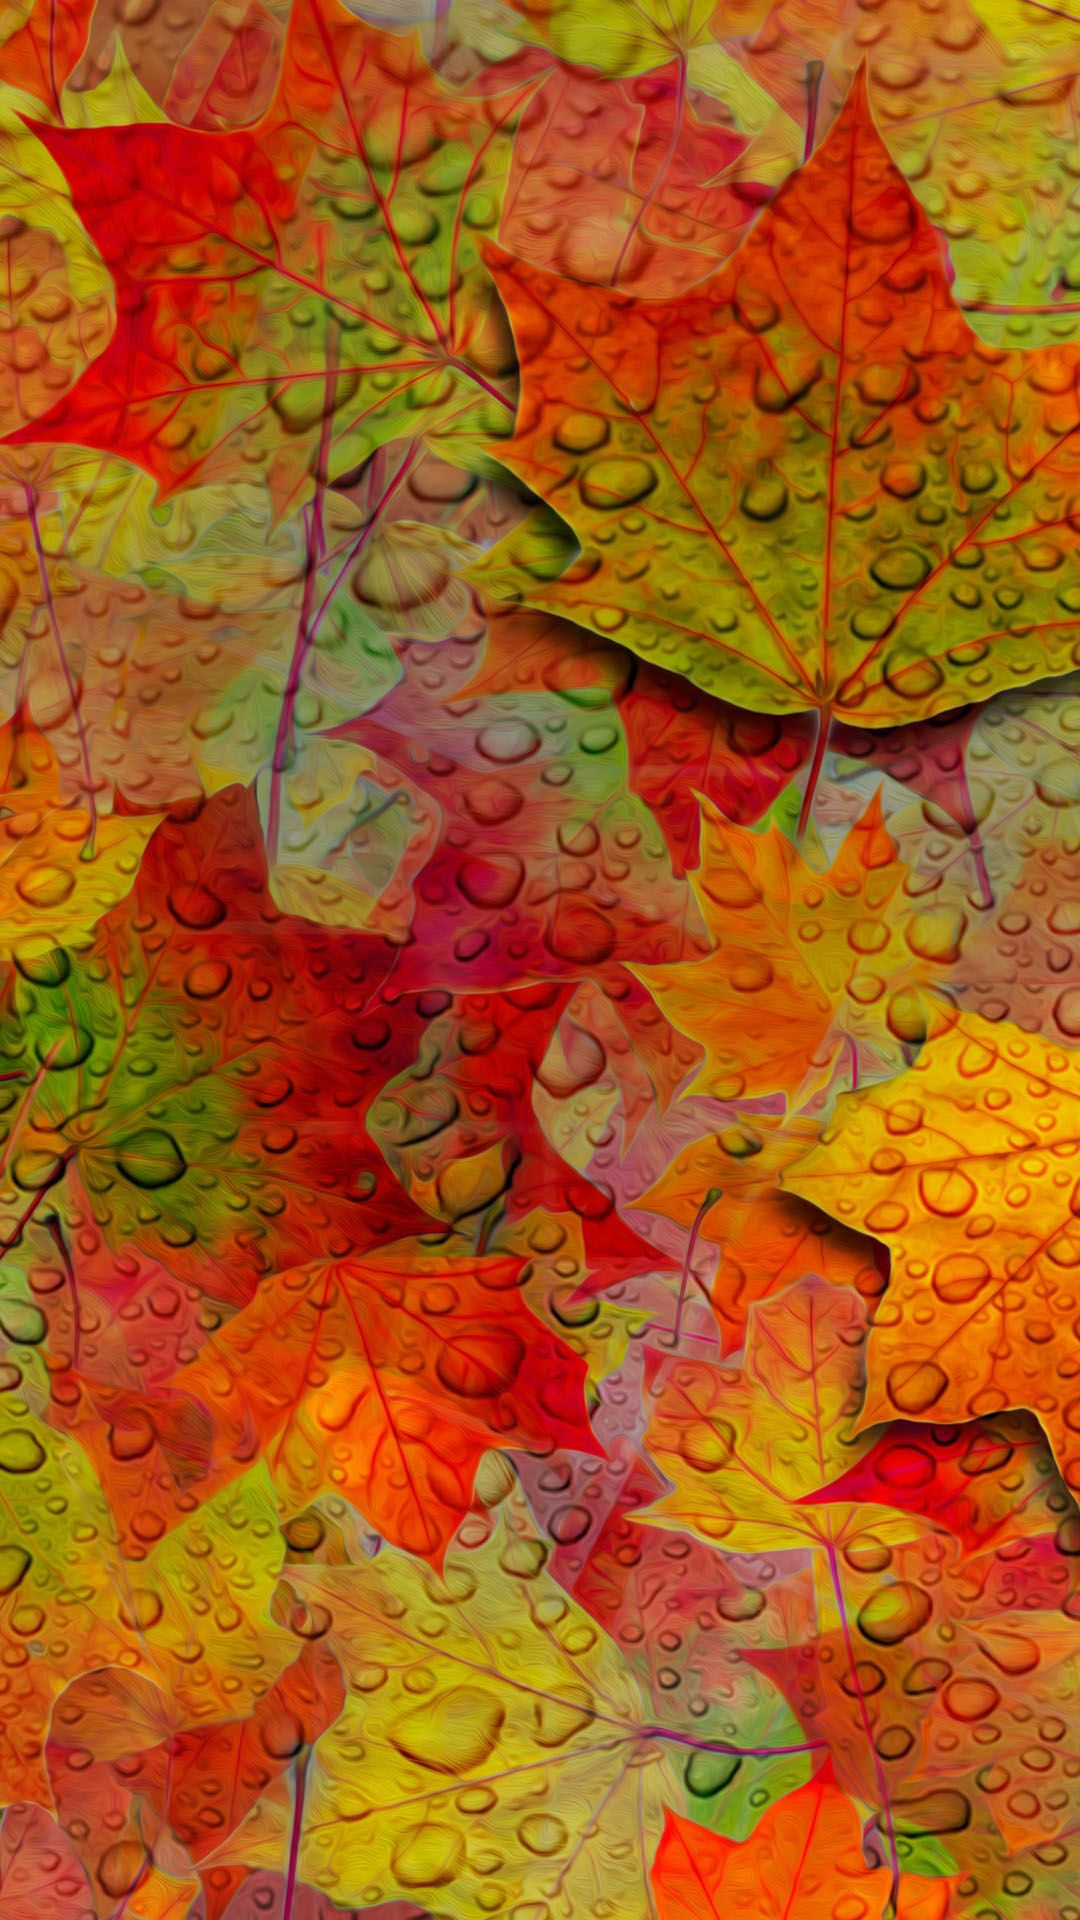 Spain Wallpaper Iphone Wallpapers Of The Week Autumn